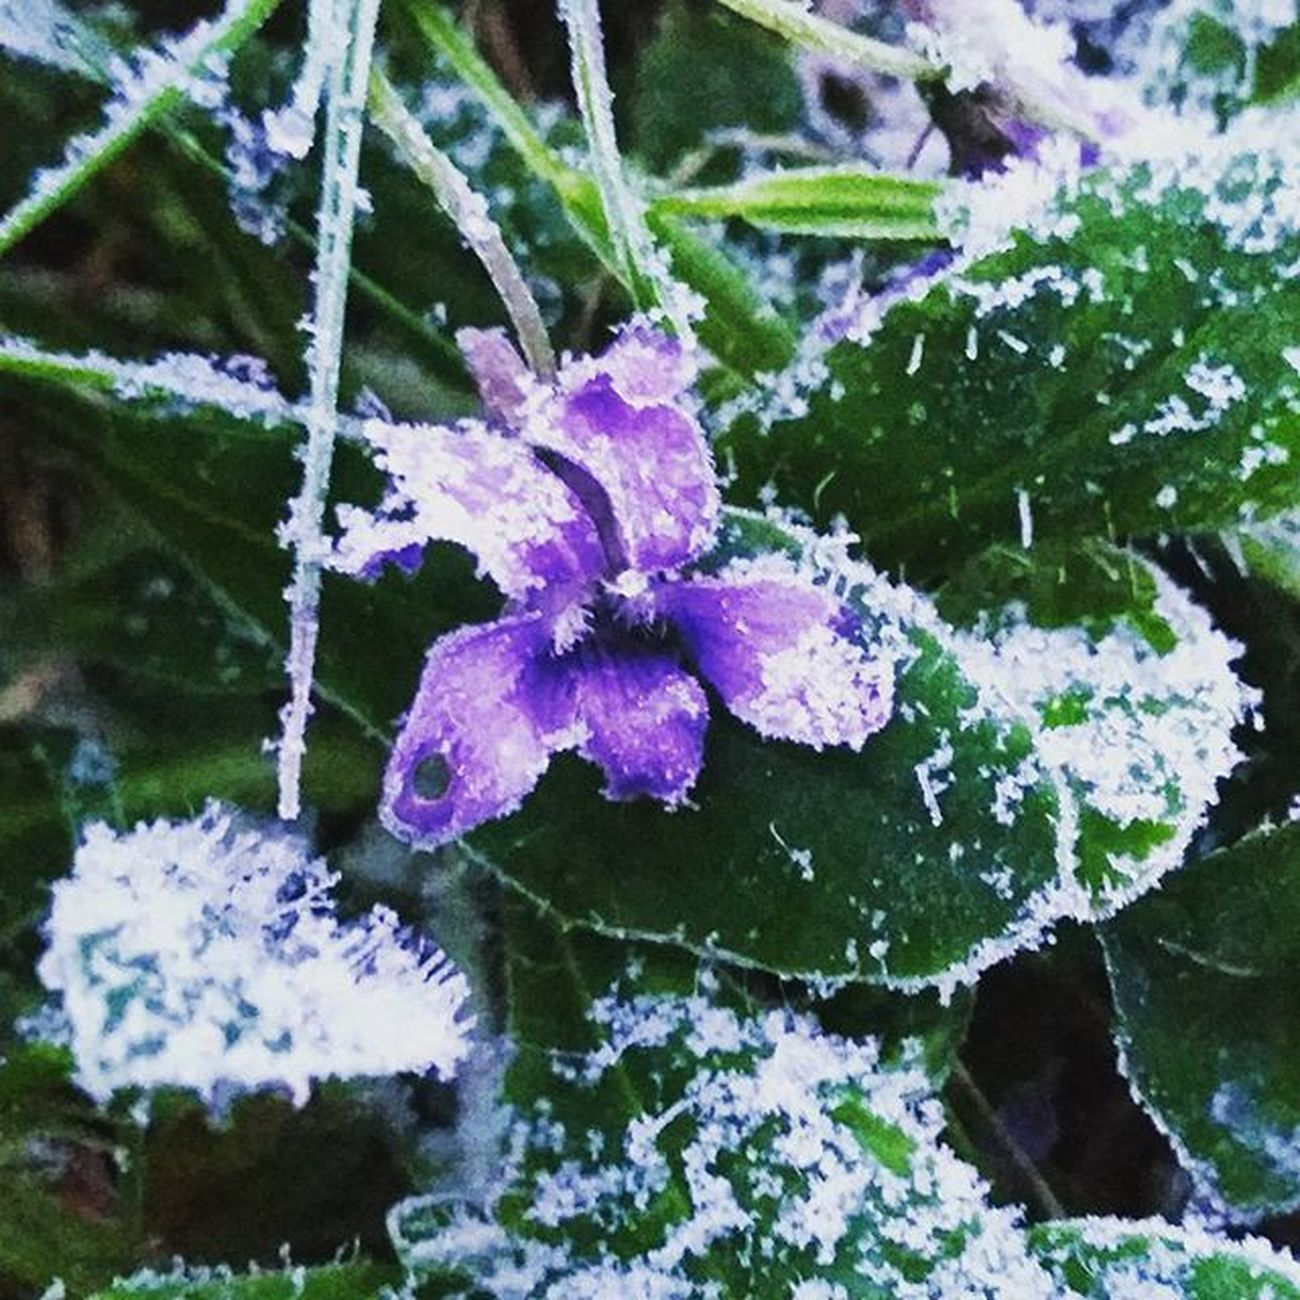 A little bit Frosty this morning❄ ❄ Frostymorning Flower Iceflower Icy Purpleblooms Lilacflowers Goodmorning Whereisspring Nature's Diversities